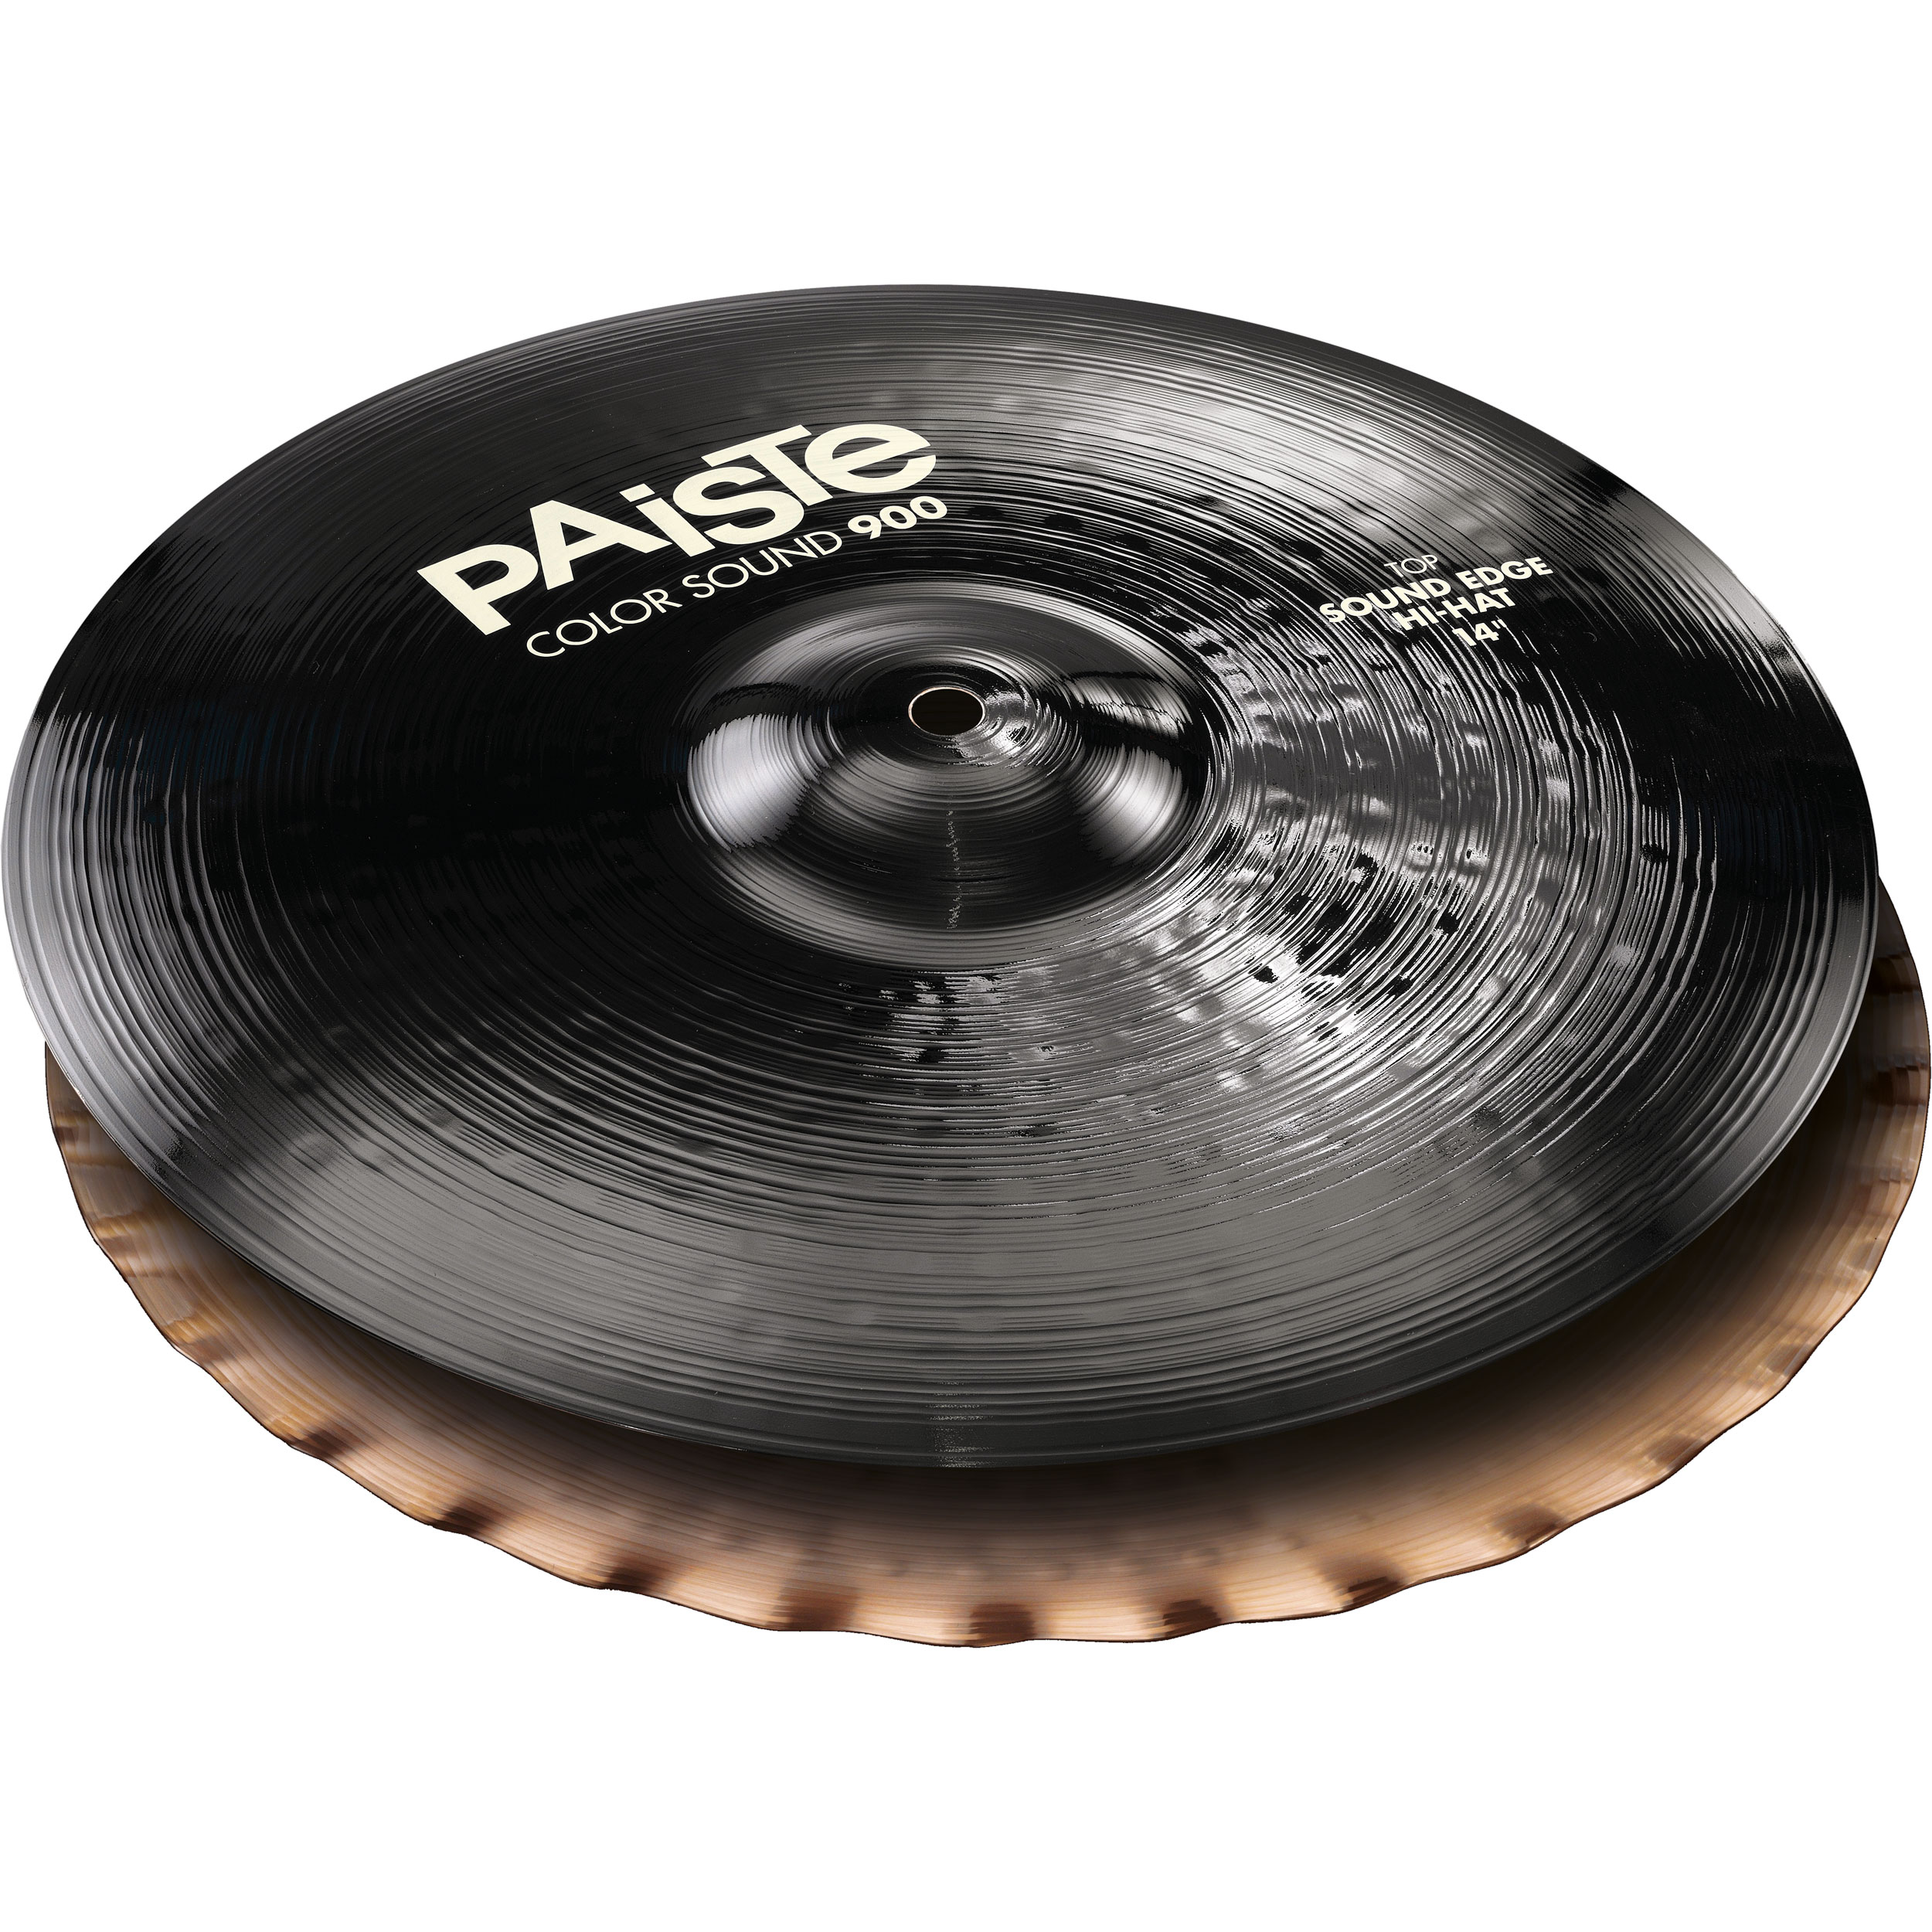 "Paiste 14"" Color Sound 900 Black Sound Edge Hi Hat Cymbals"